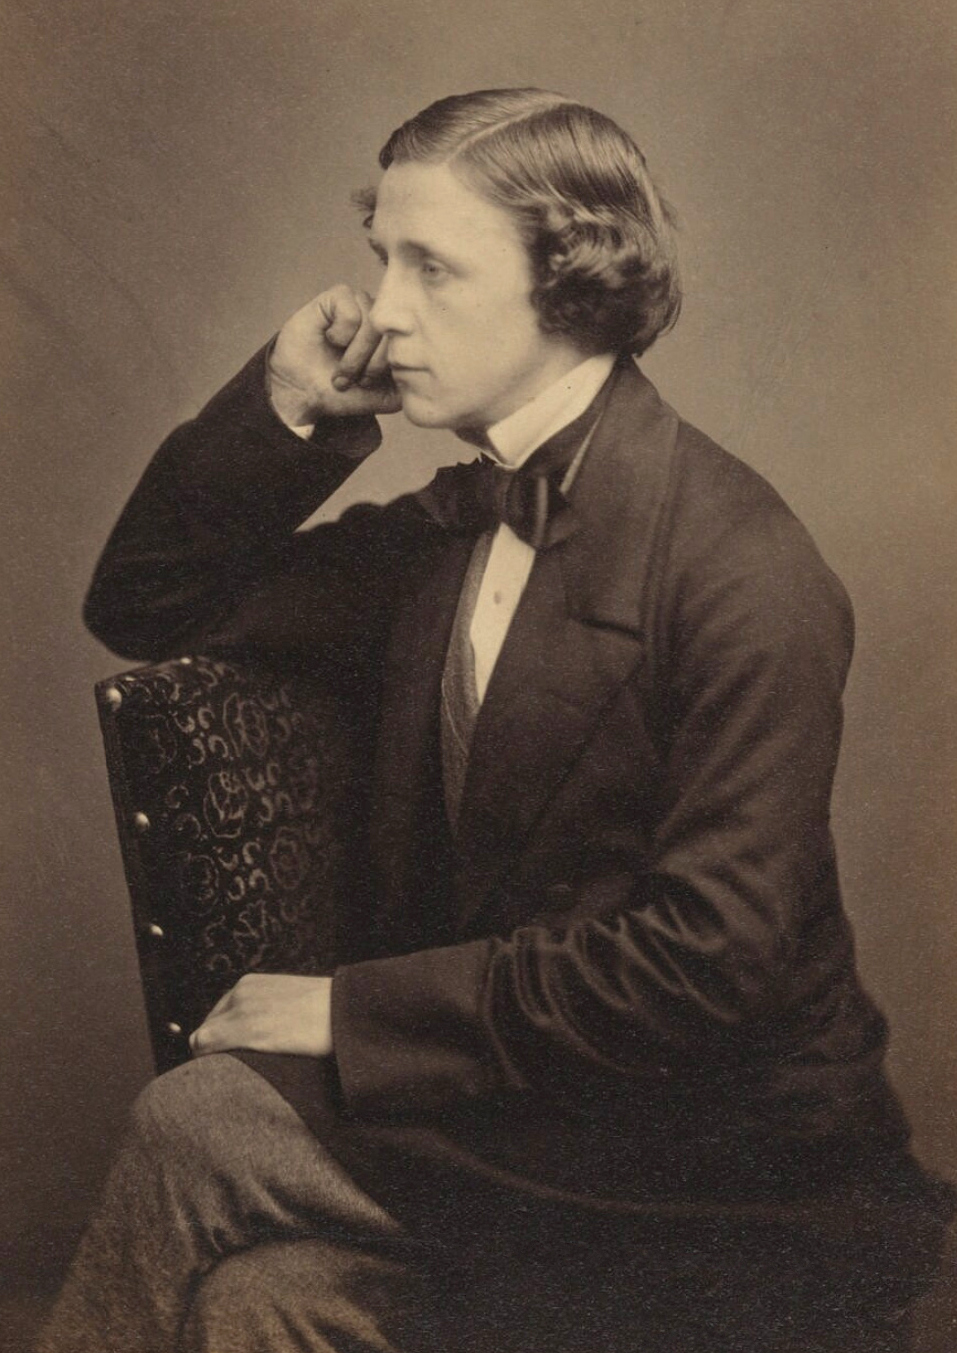 Lewis Carroll (photo taken 1855)